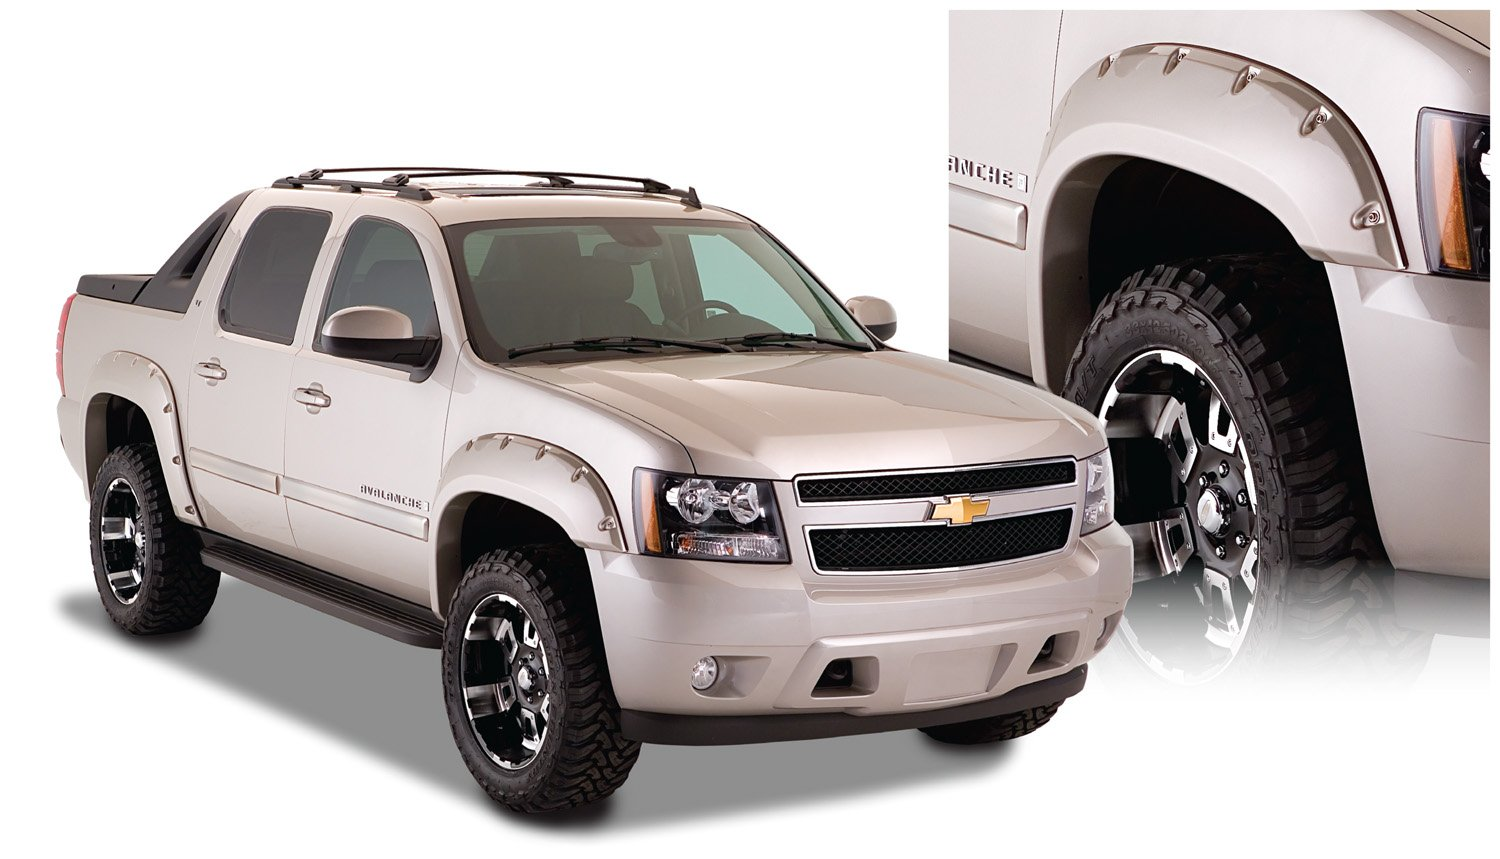 Avalanche 2007 chevy avalanche owners manual pdf : Amazon.com: Bushwacker 40932-02 Chevrolet Pocket Style Fender ...